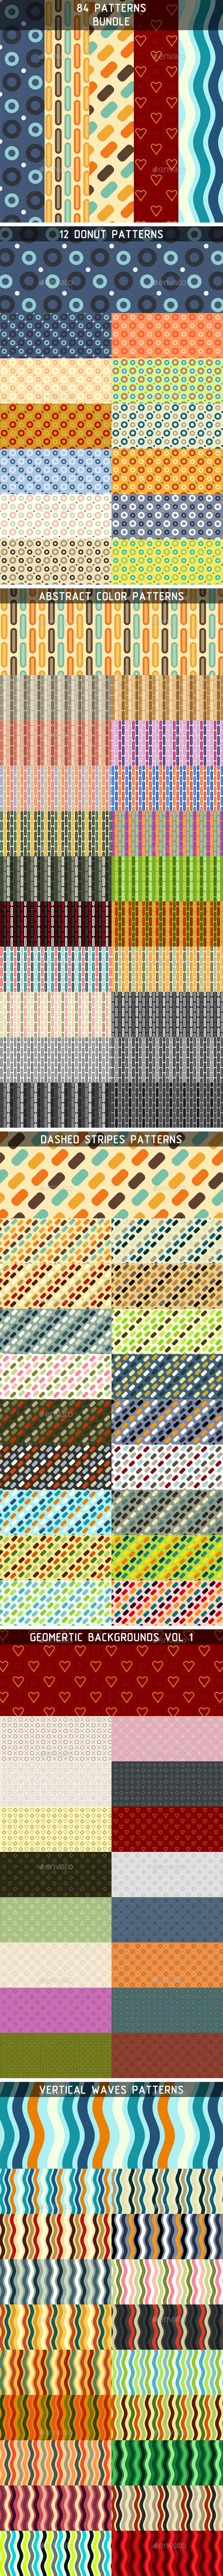 GraphicRiver 84 Patterns Bundle 10036435